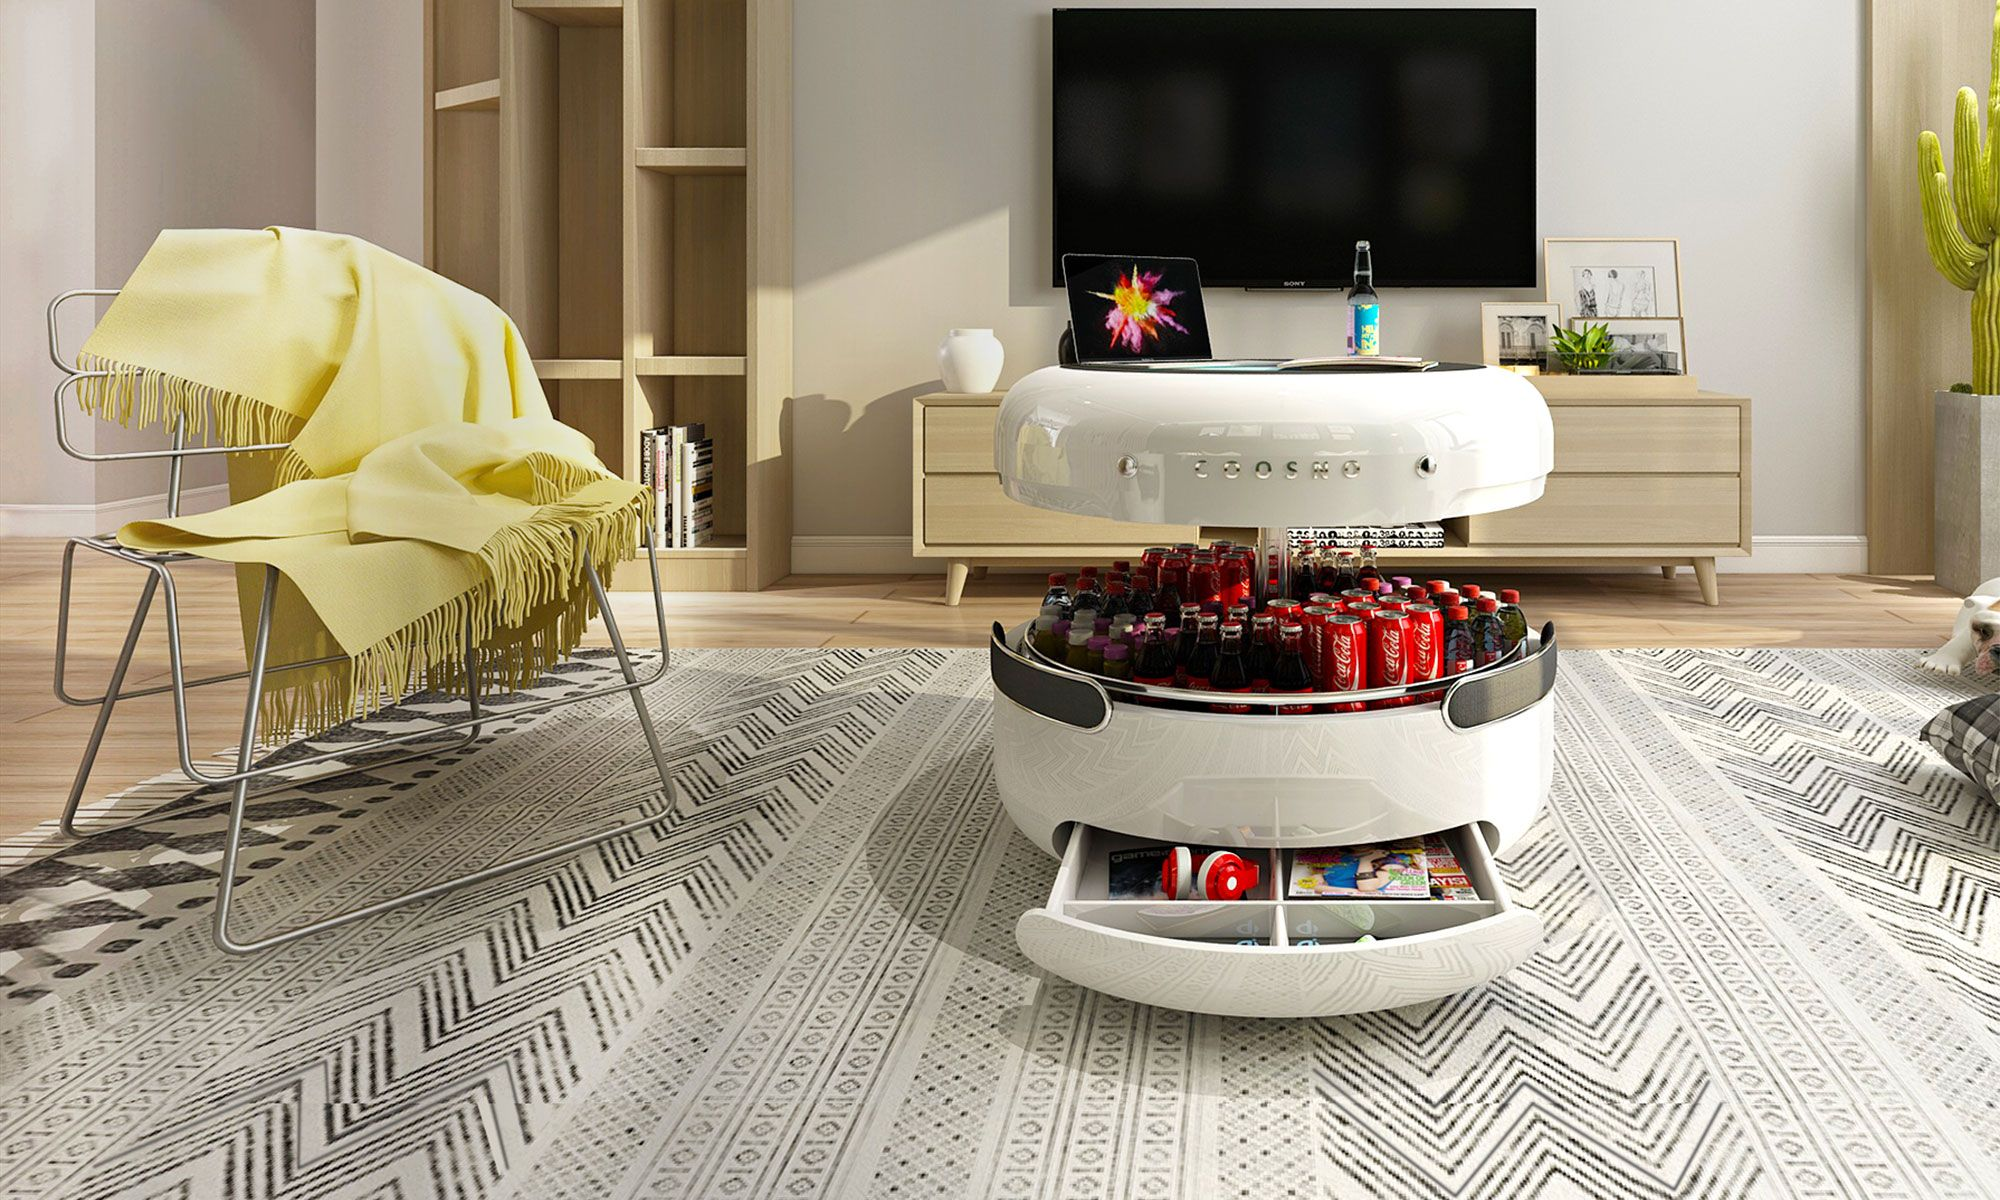 Coosno Refrigerator Coffee Table Hybrid Coffee table, Table